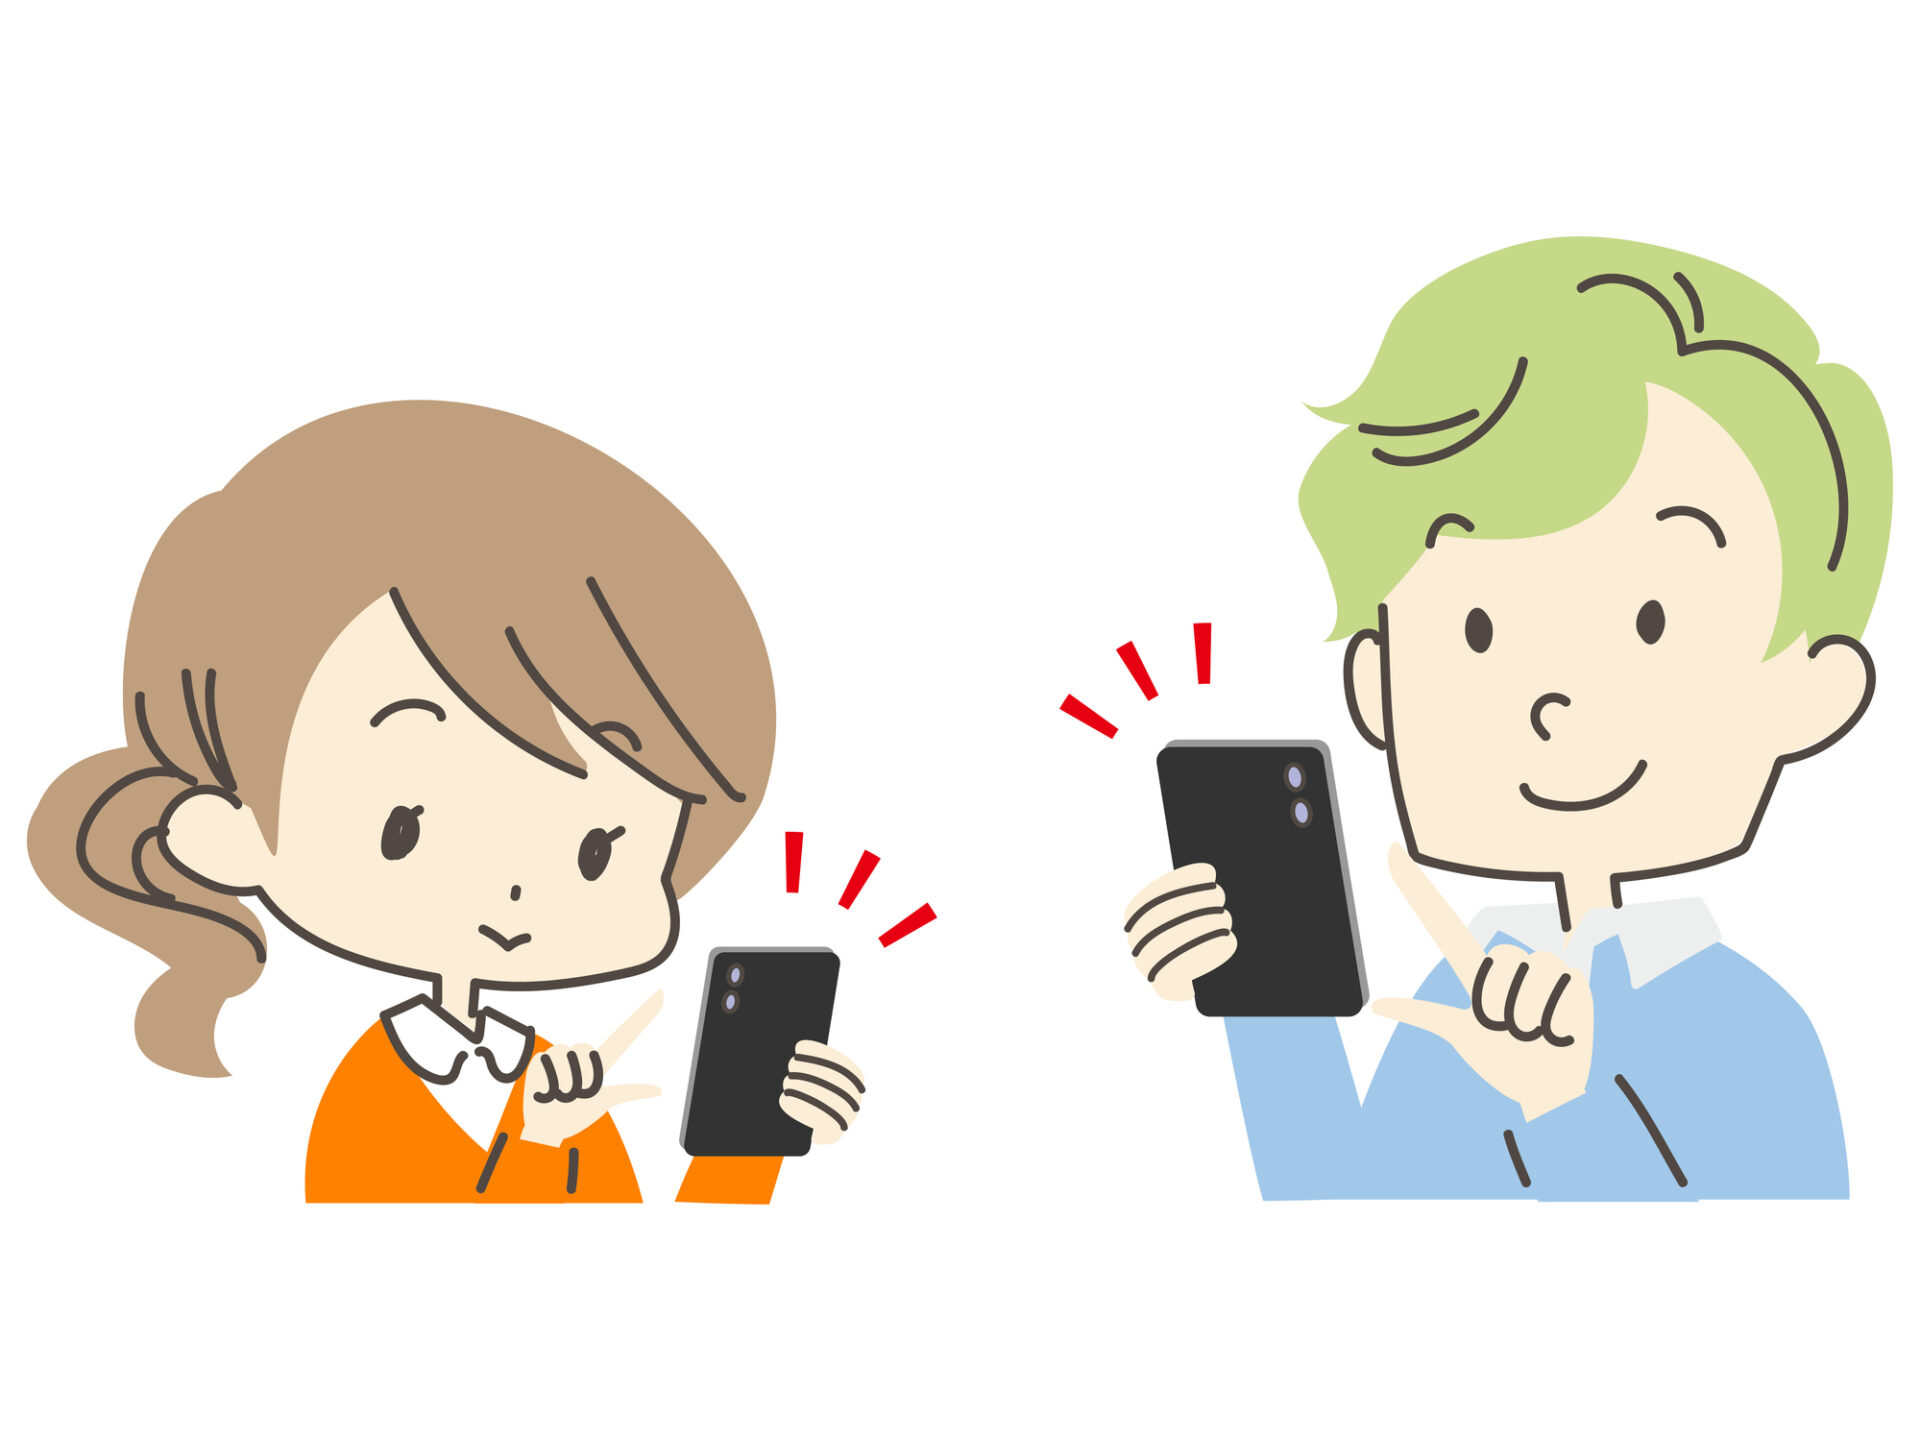 Two people operating a smartphone